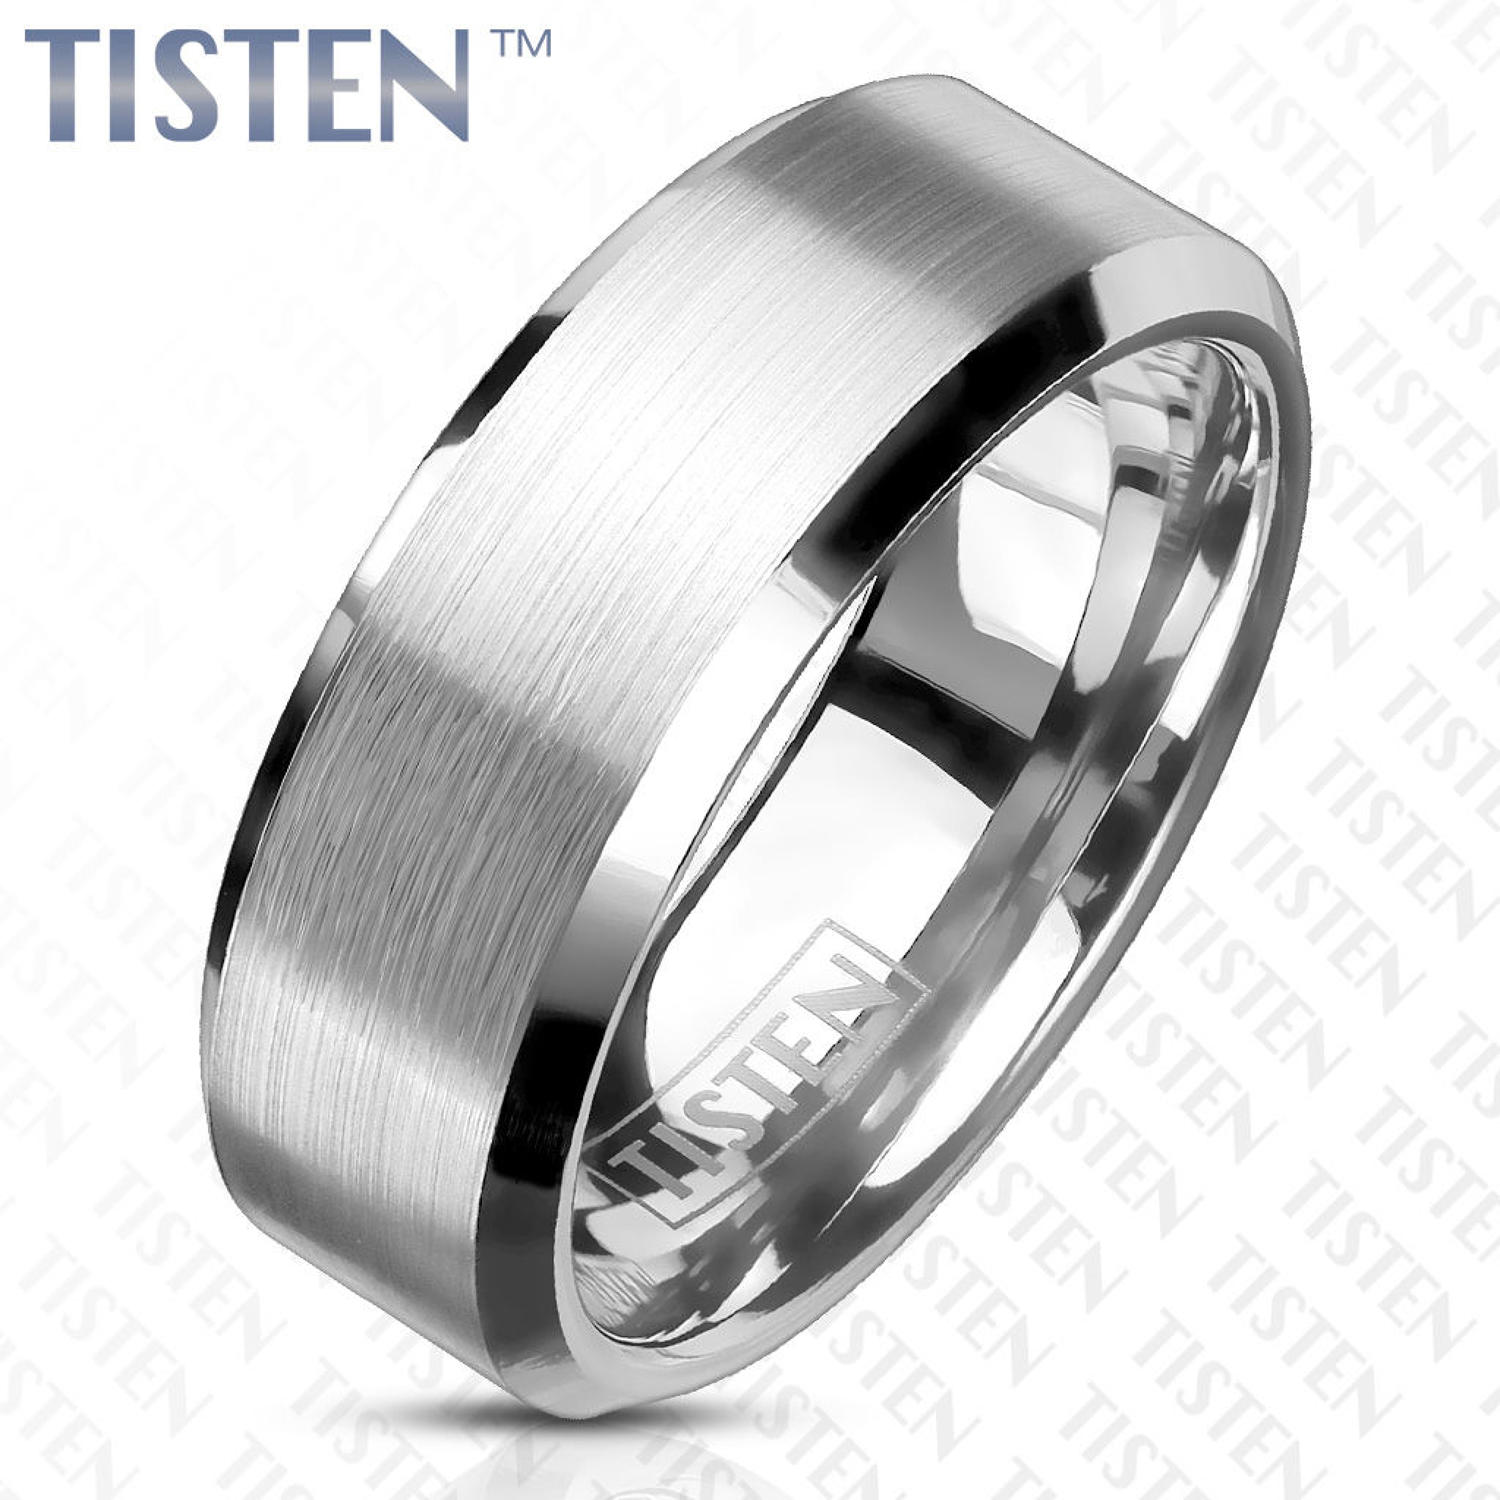 Tisten Matt Centre 6mm Wide Polished Bevelled Edge Ring